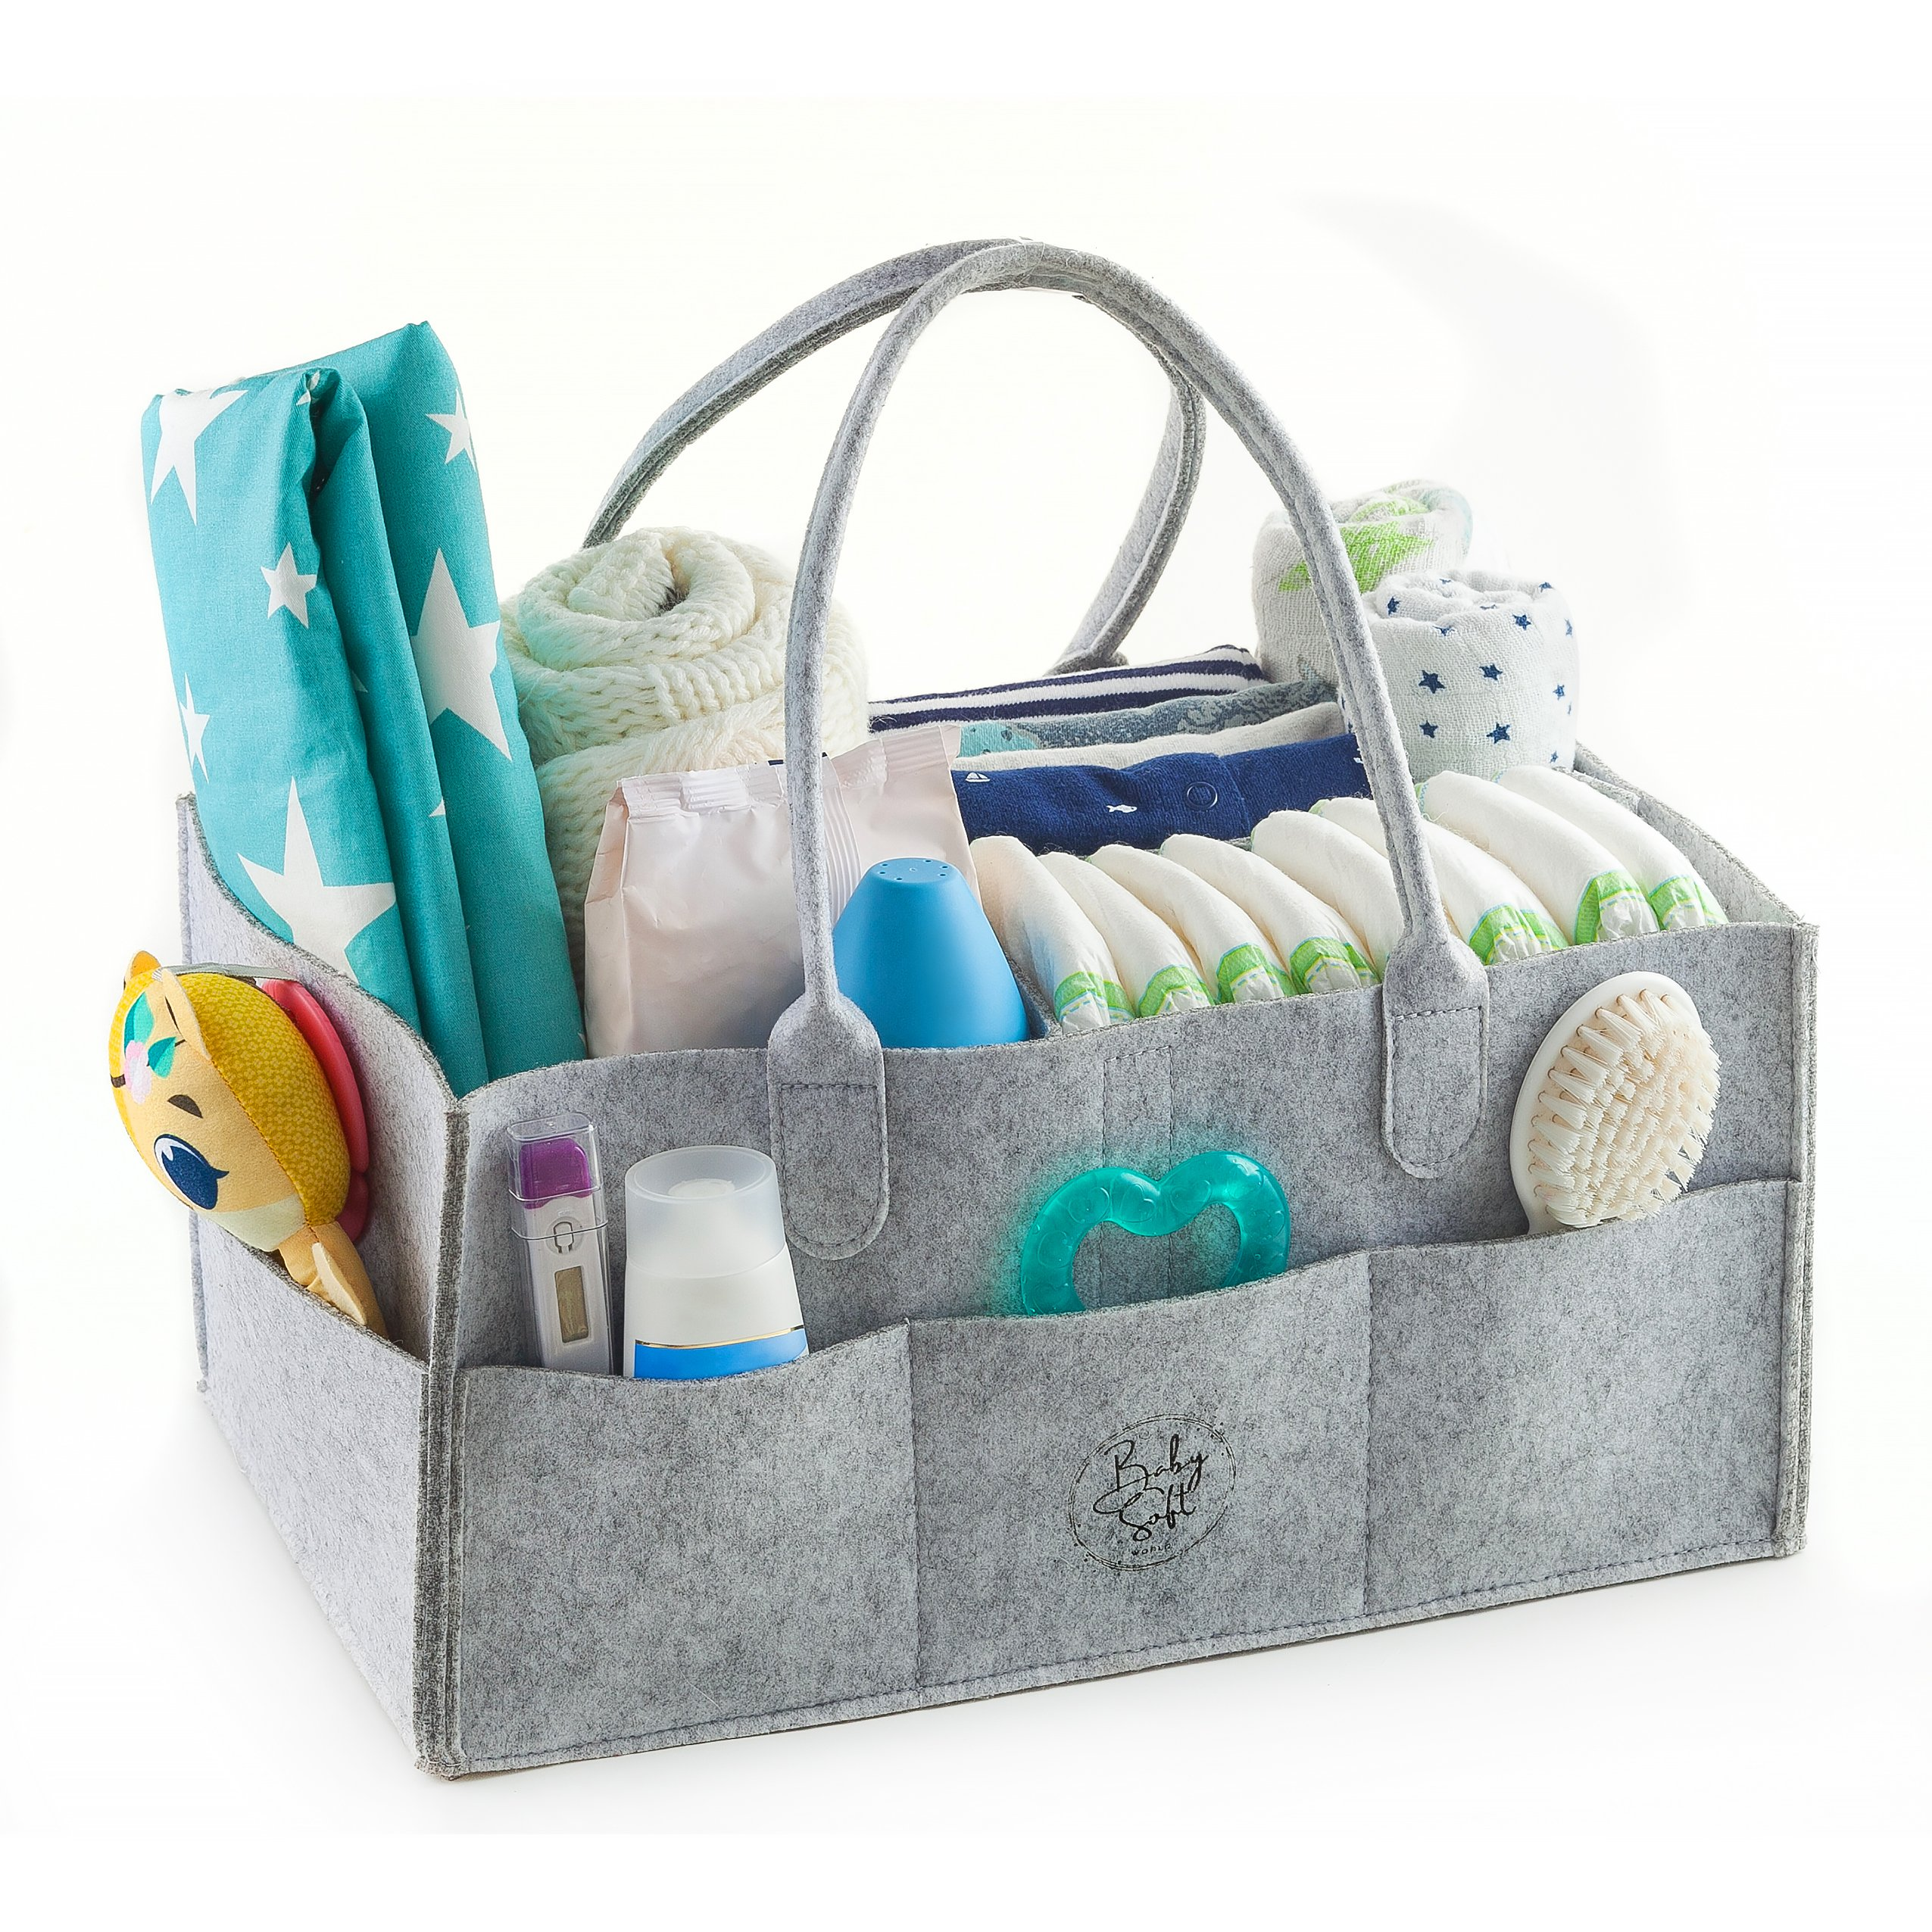 Baby Diaper Caddy Organizer, Large Baby Nursery Basket For Diapers, Wipes, Cloths And More, Storage Bag For Car with Bonus Changing Pad, Perfect Baby Shower Gift, 15 x 10 x 7 Inches, Gray by Baby Soft World